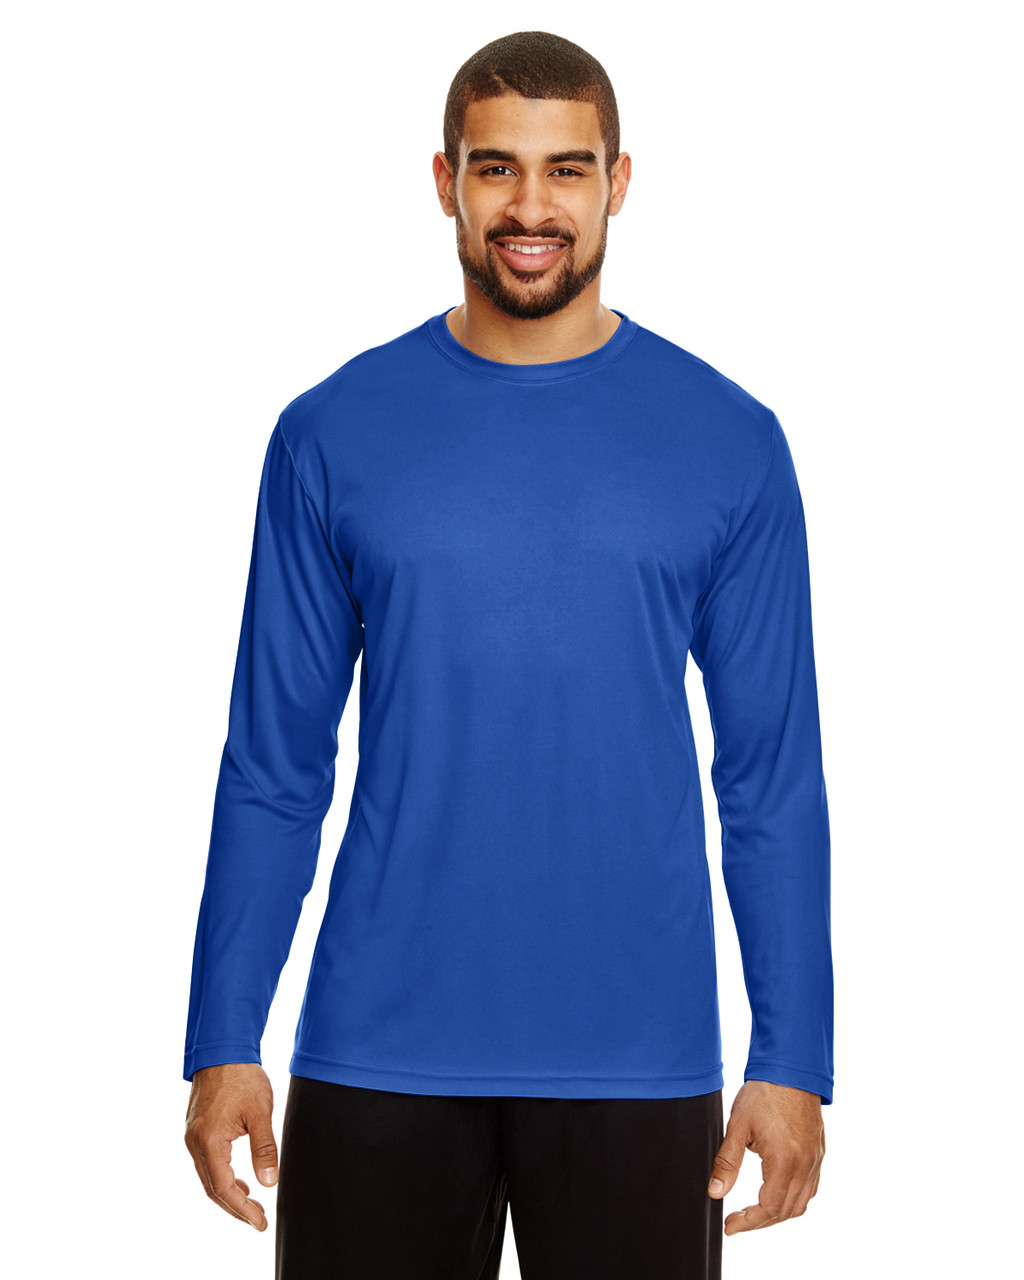 Sport Royal - TT11L Team 365 Men's Zone Performance Long Sleeve T-Shirt | BlankClothing.ca